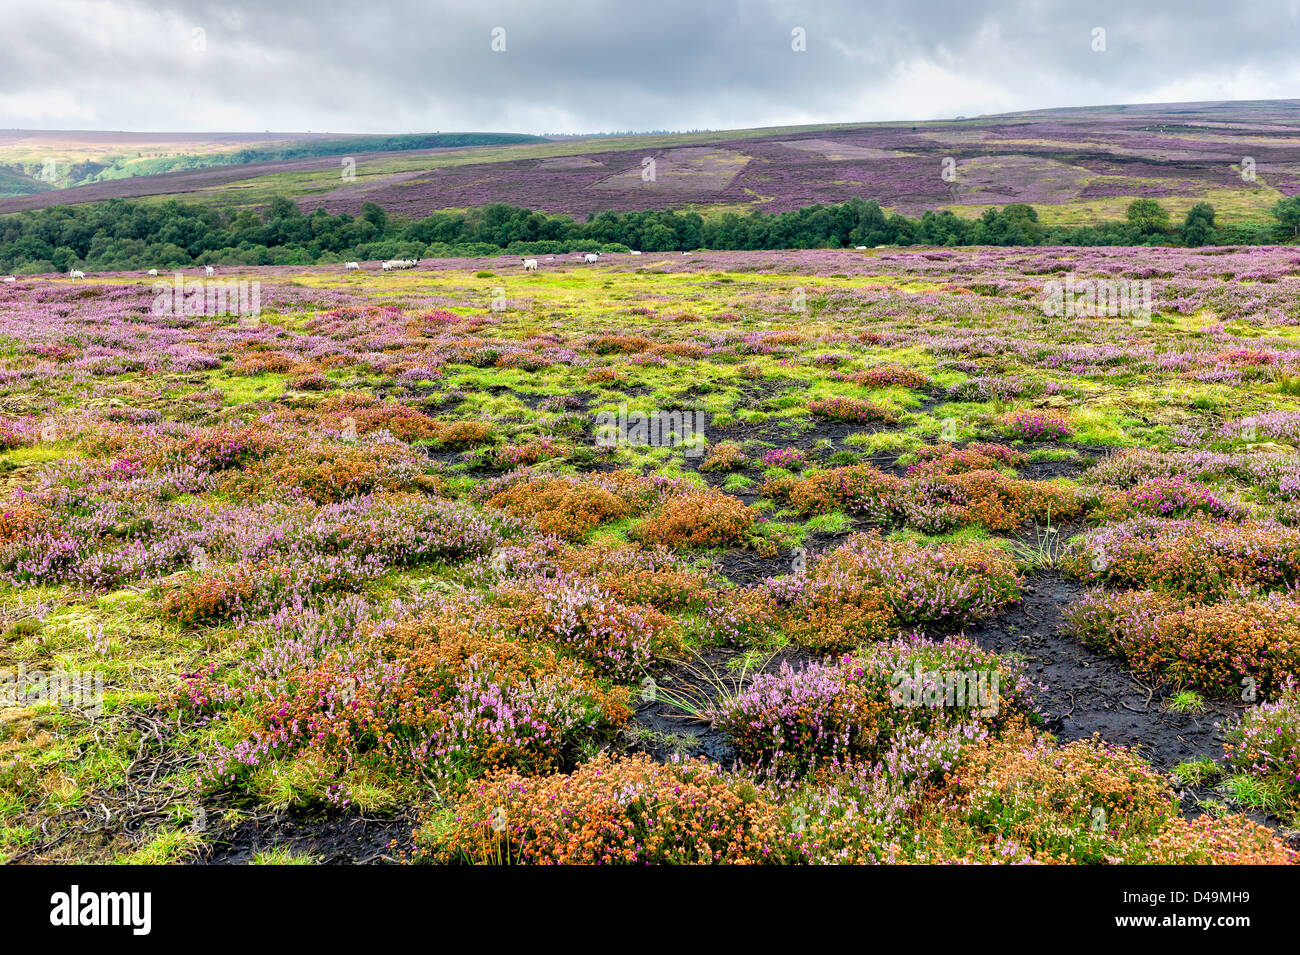 Heather in bloom over the beautiful undulating landscape of the North York Moors, Yorkshire, UK. - Stock Image